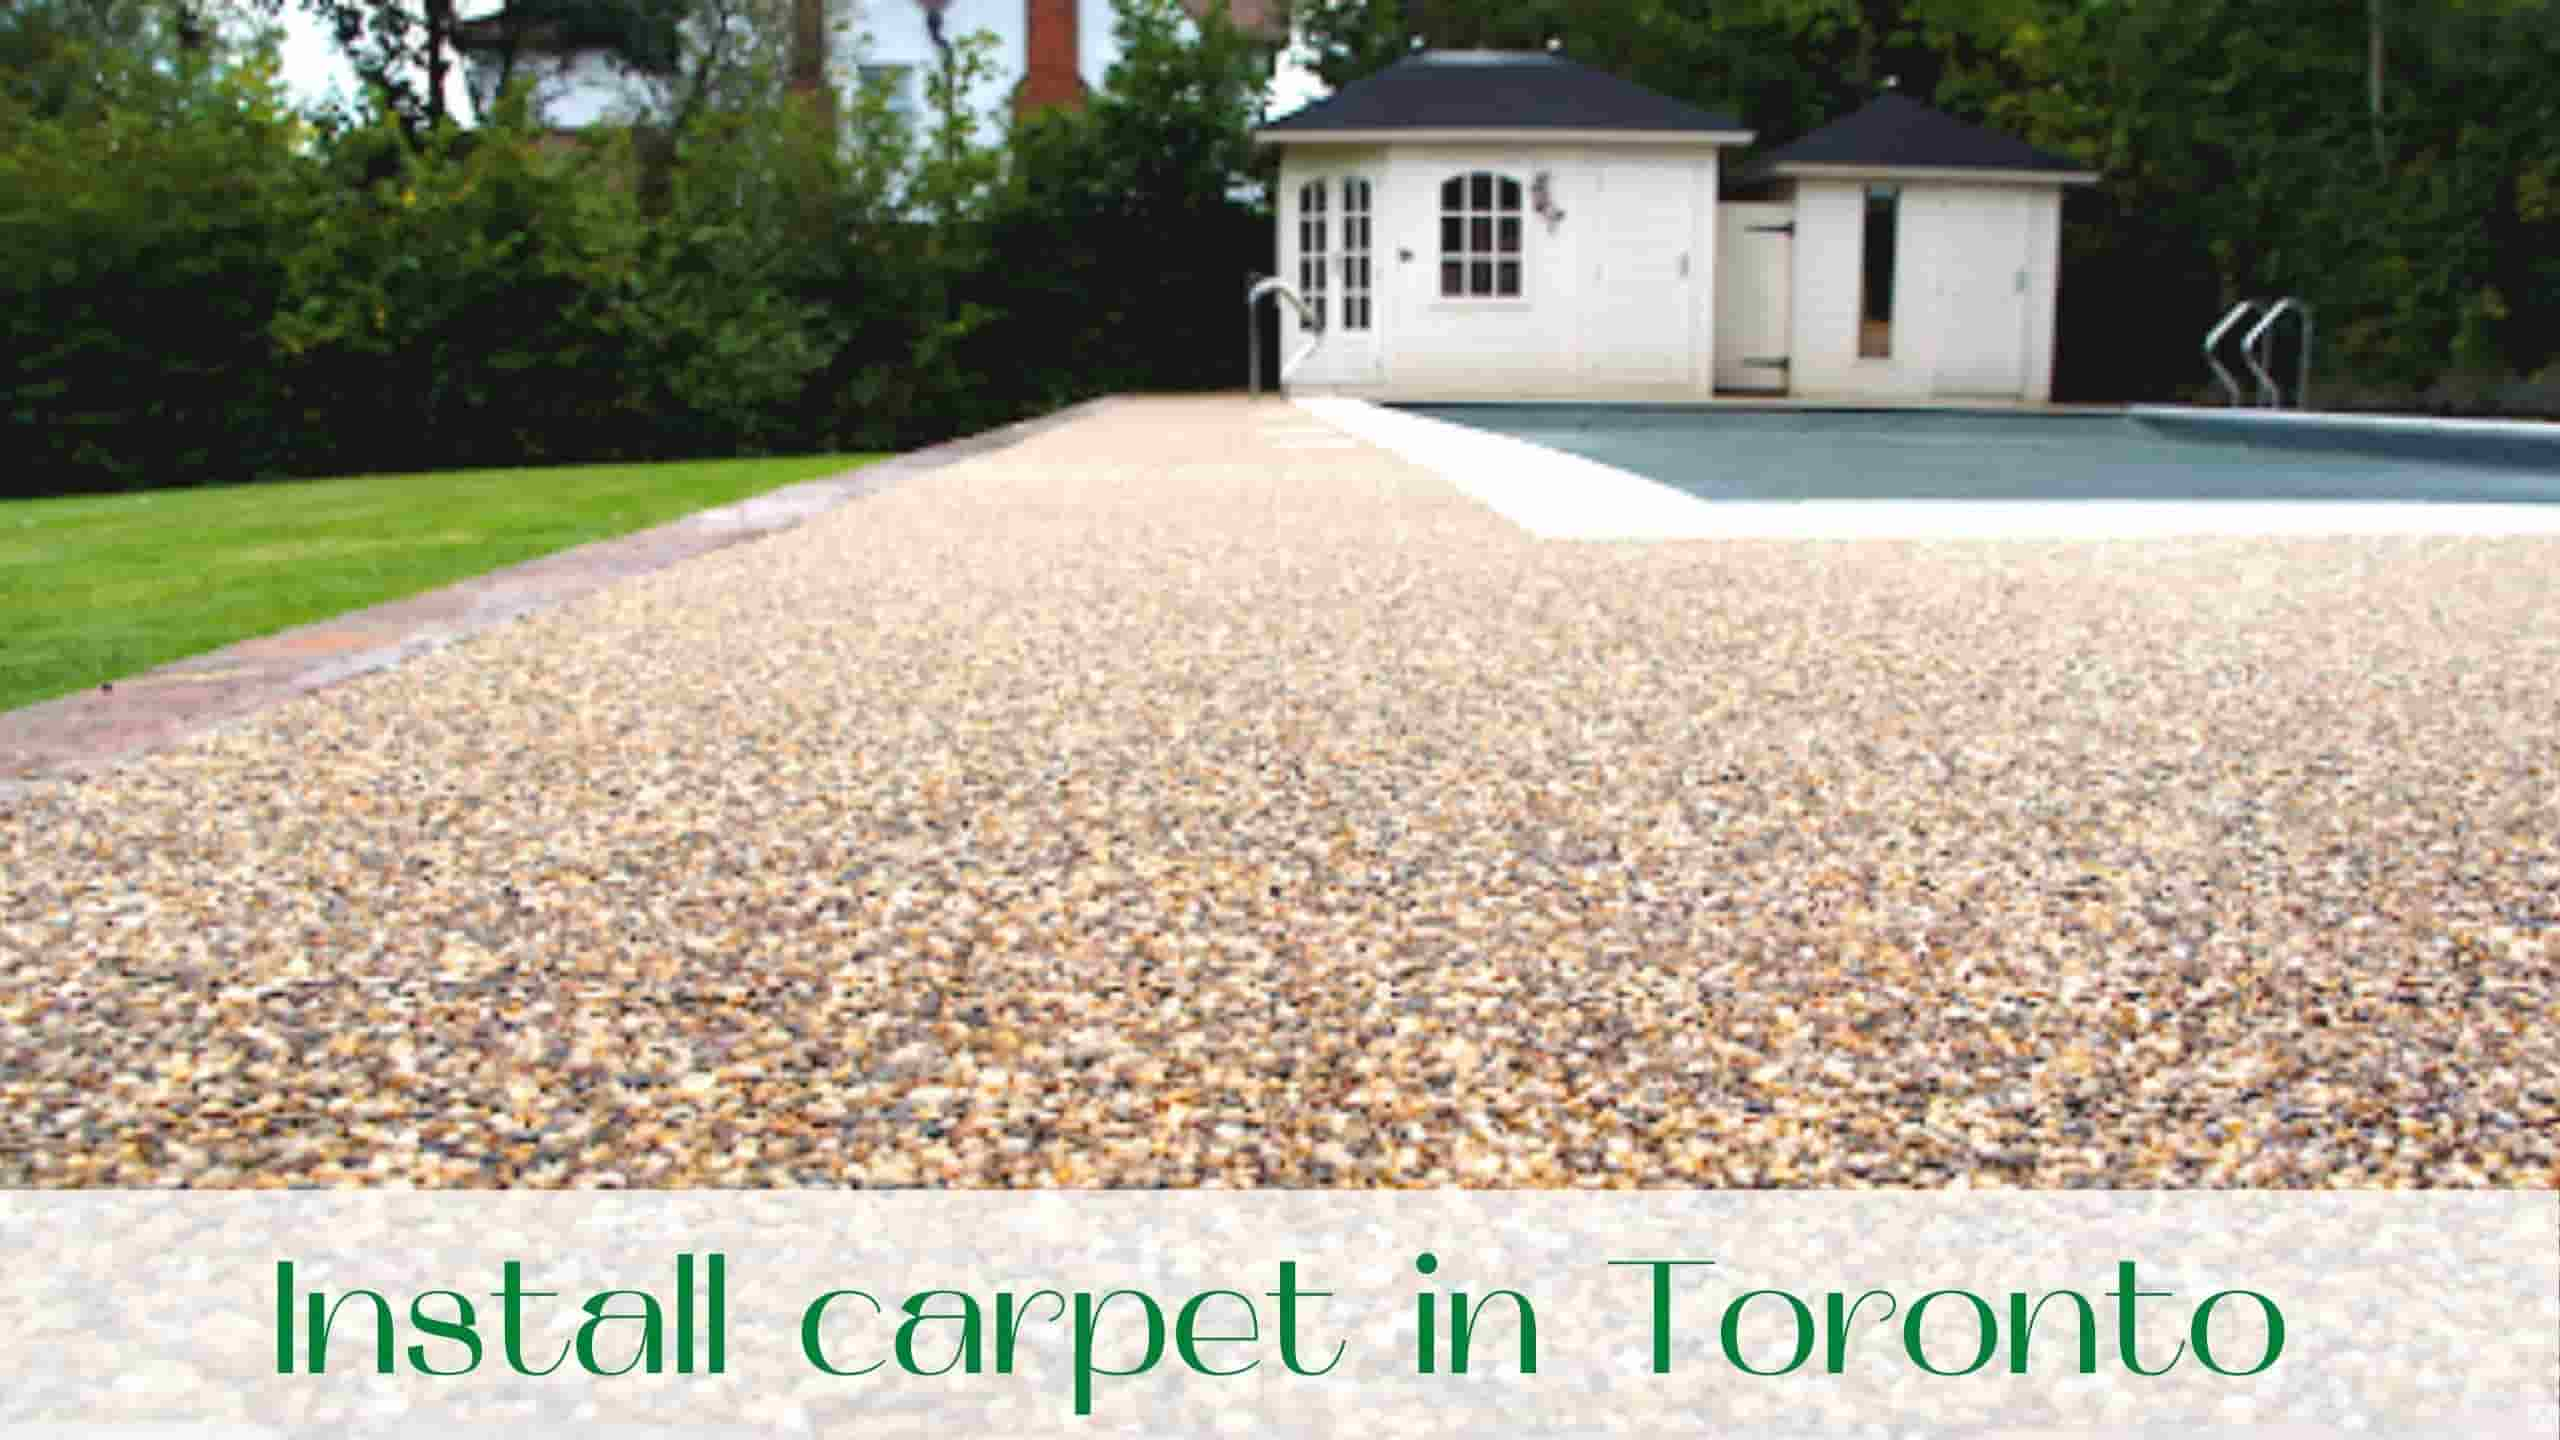 Install carpet in Toronto